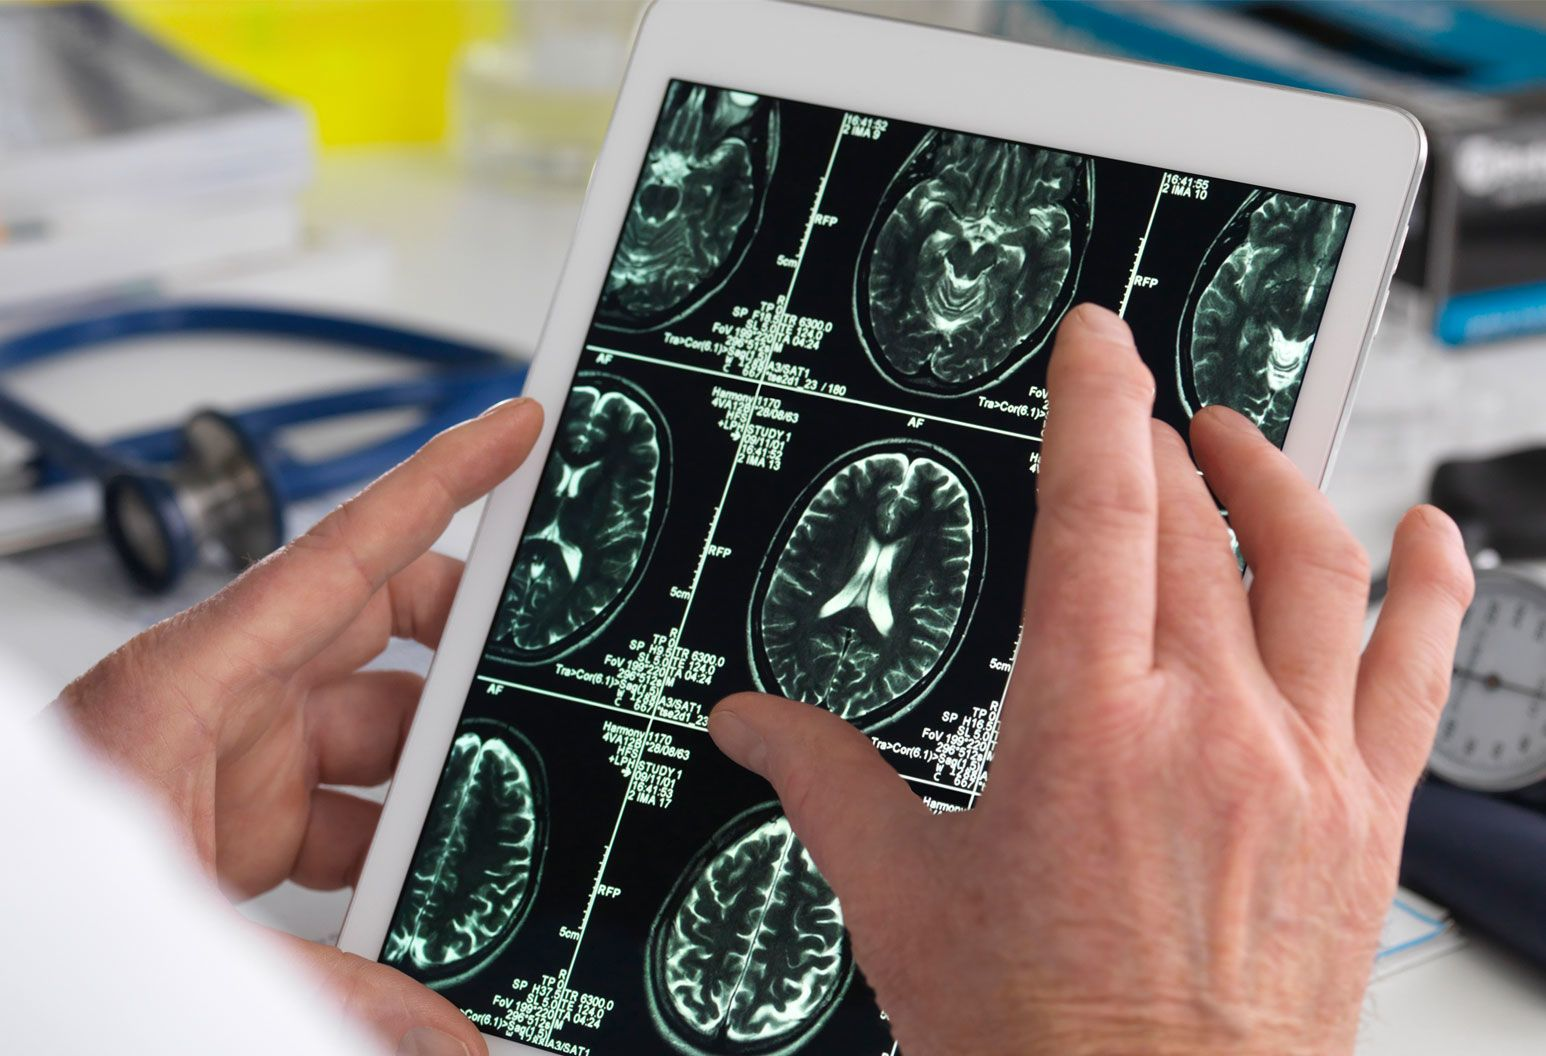 Close up view of a brain scan on a hand held tablet.